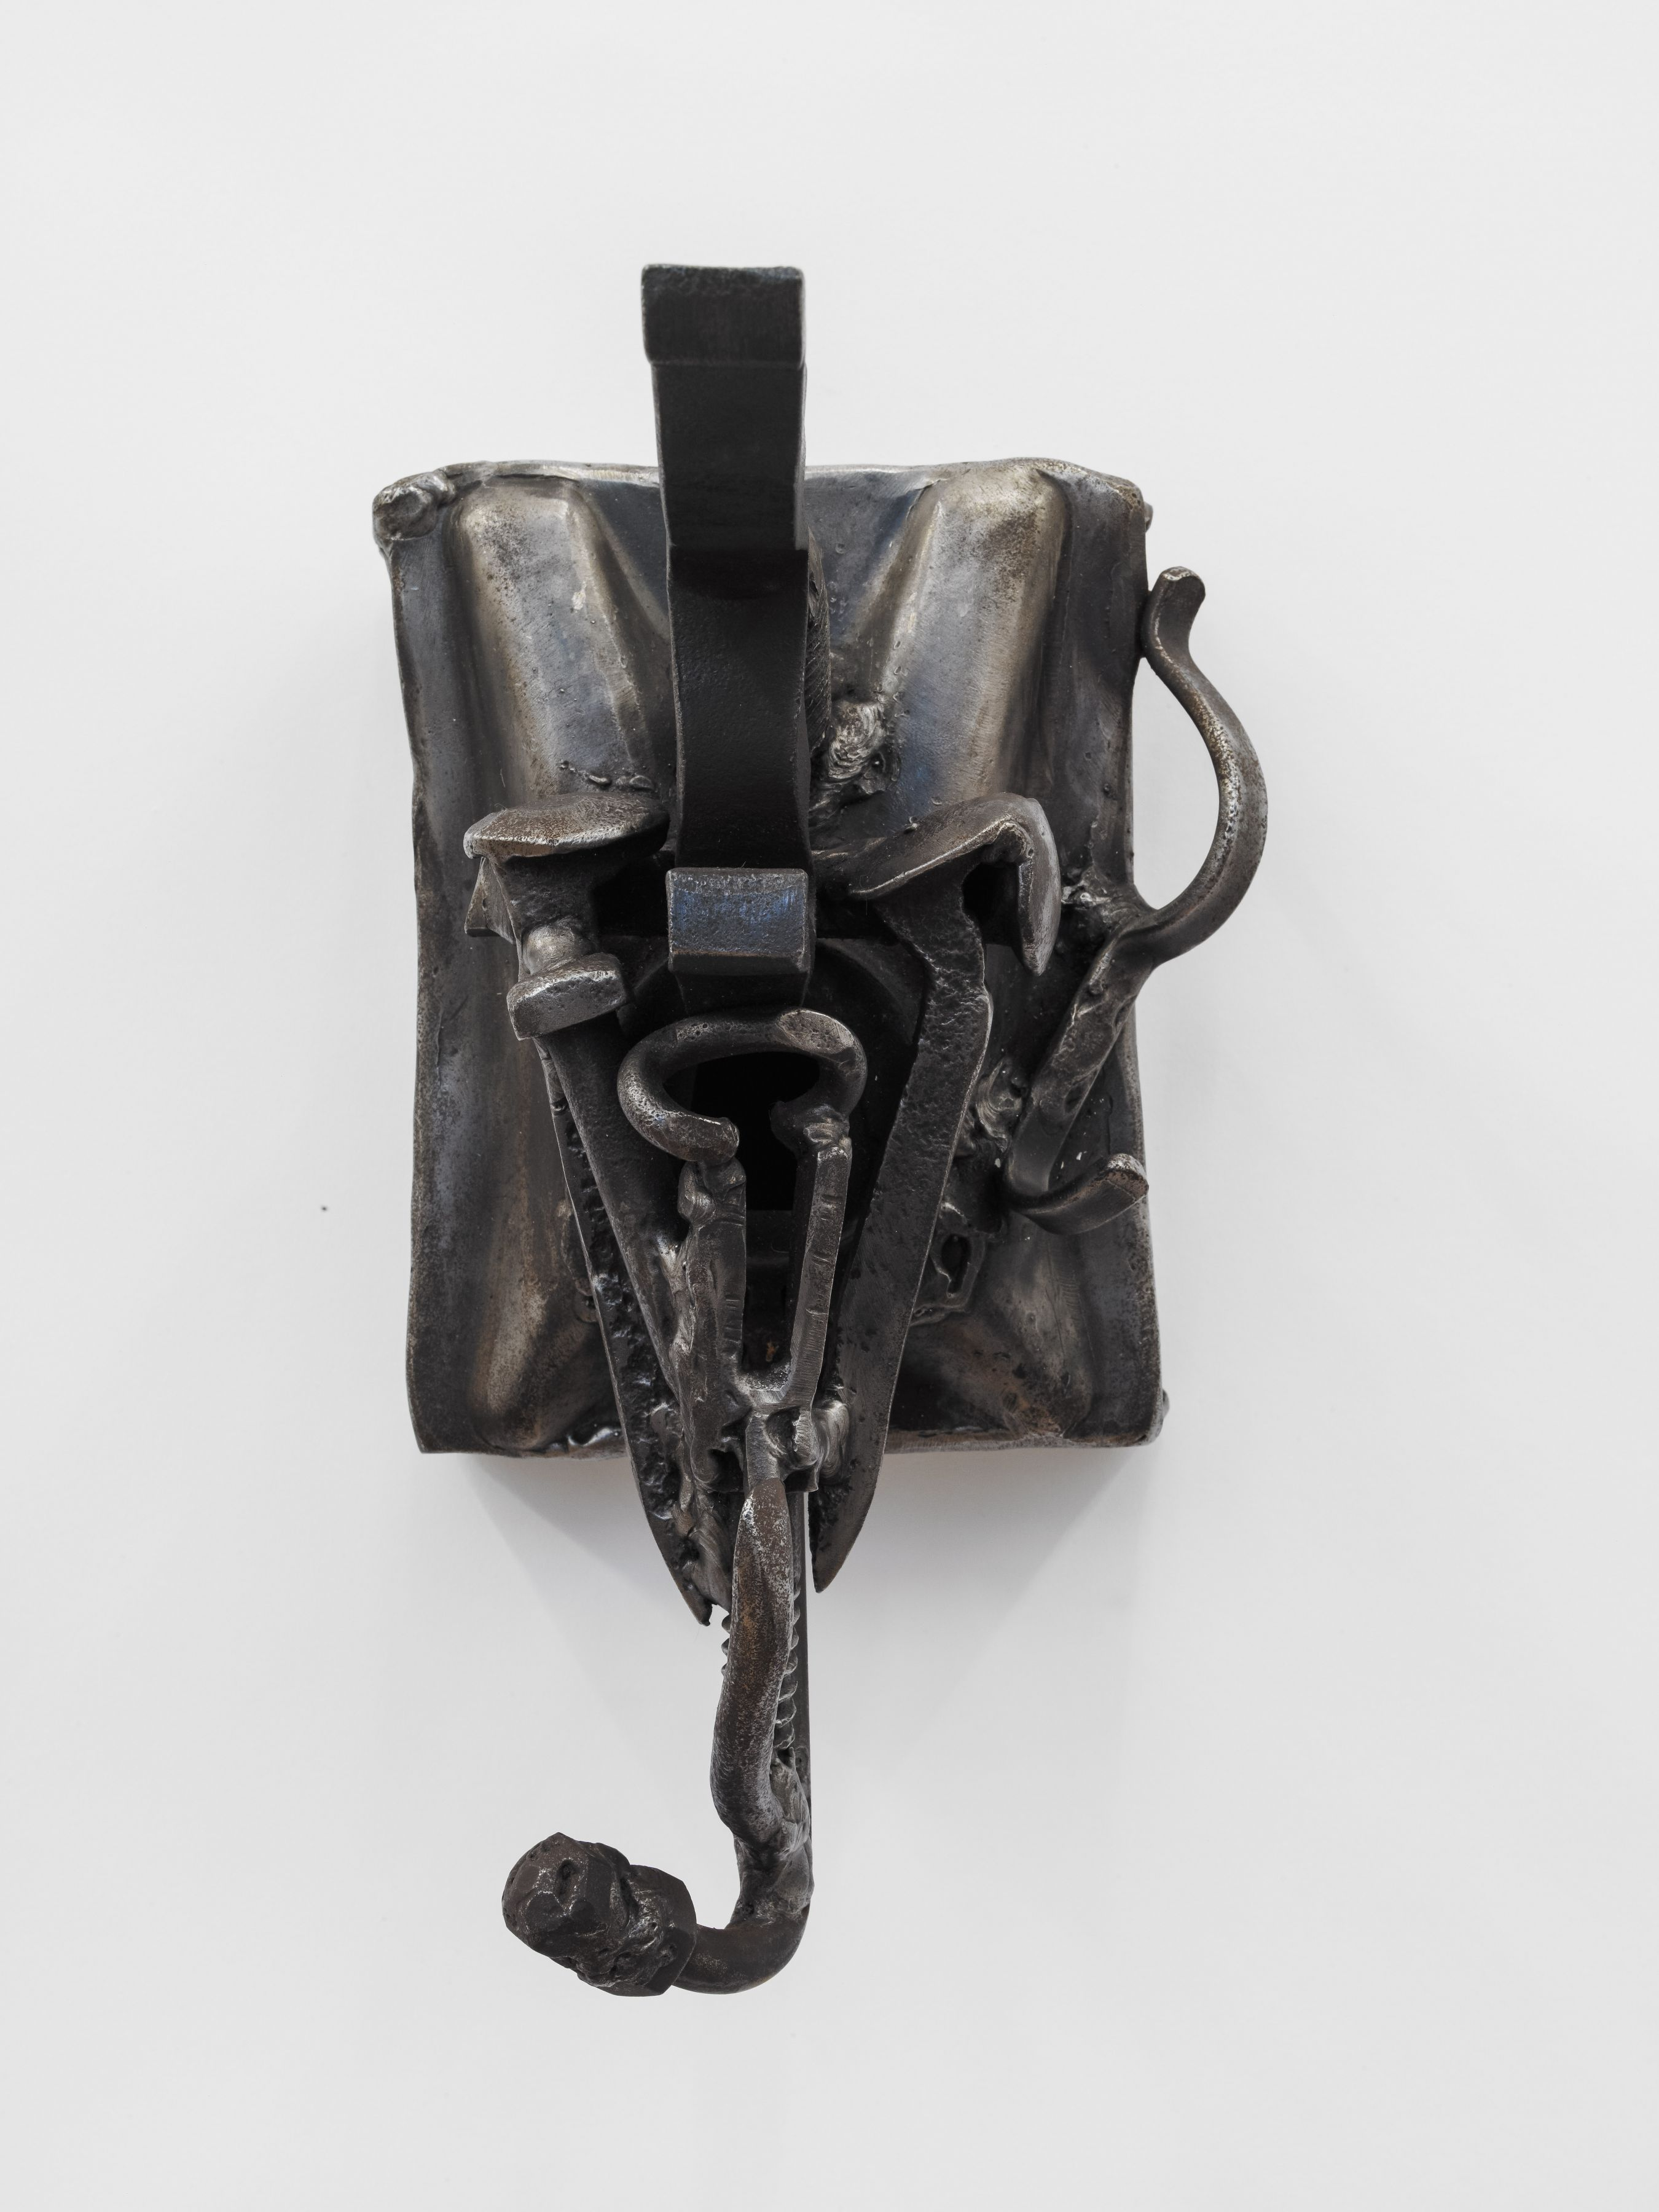 Melvin Edwards, Festac 77 Lagos Reunion, 1985